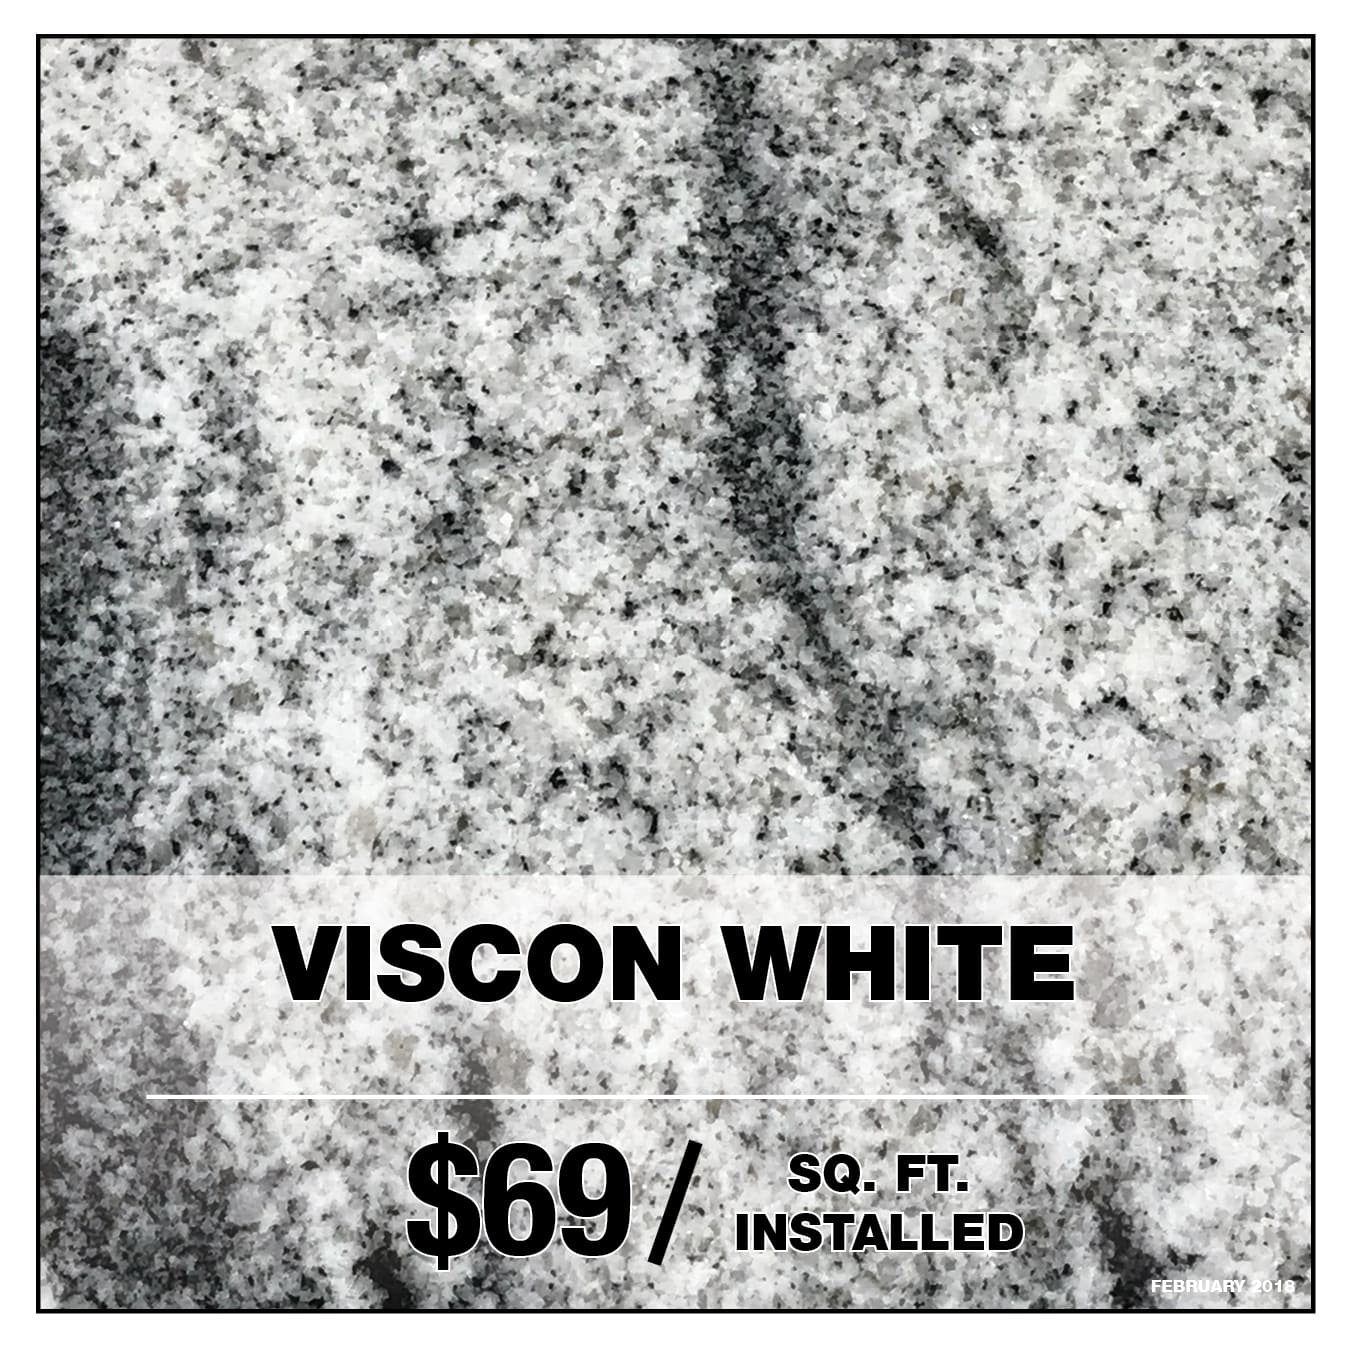 VISCON WHITE